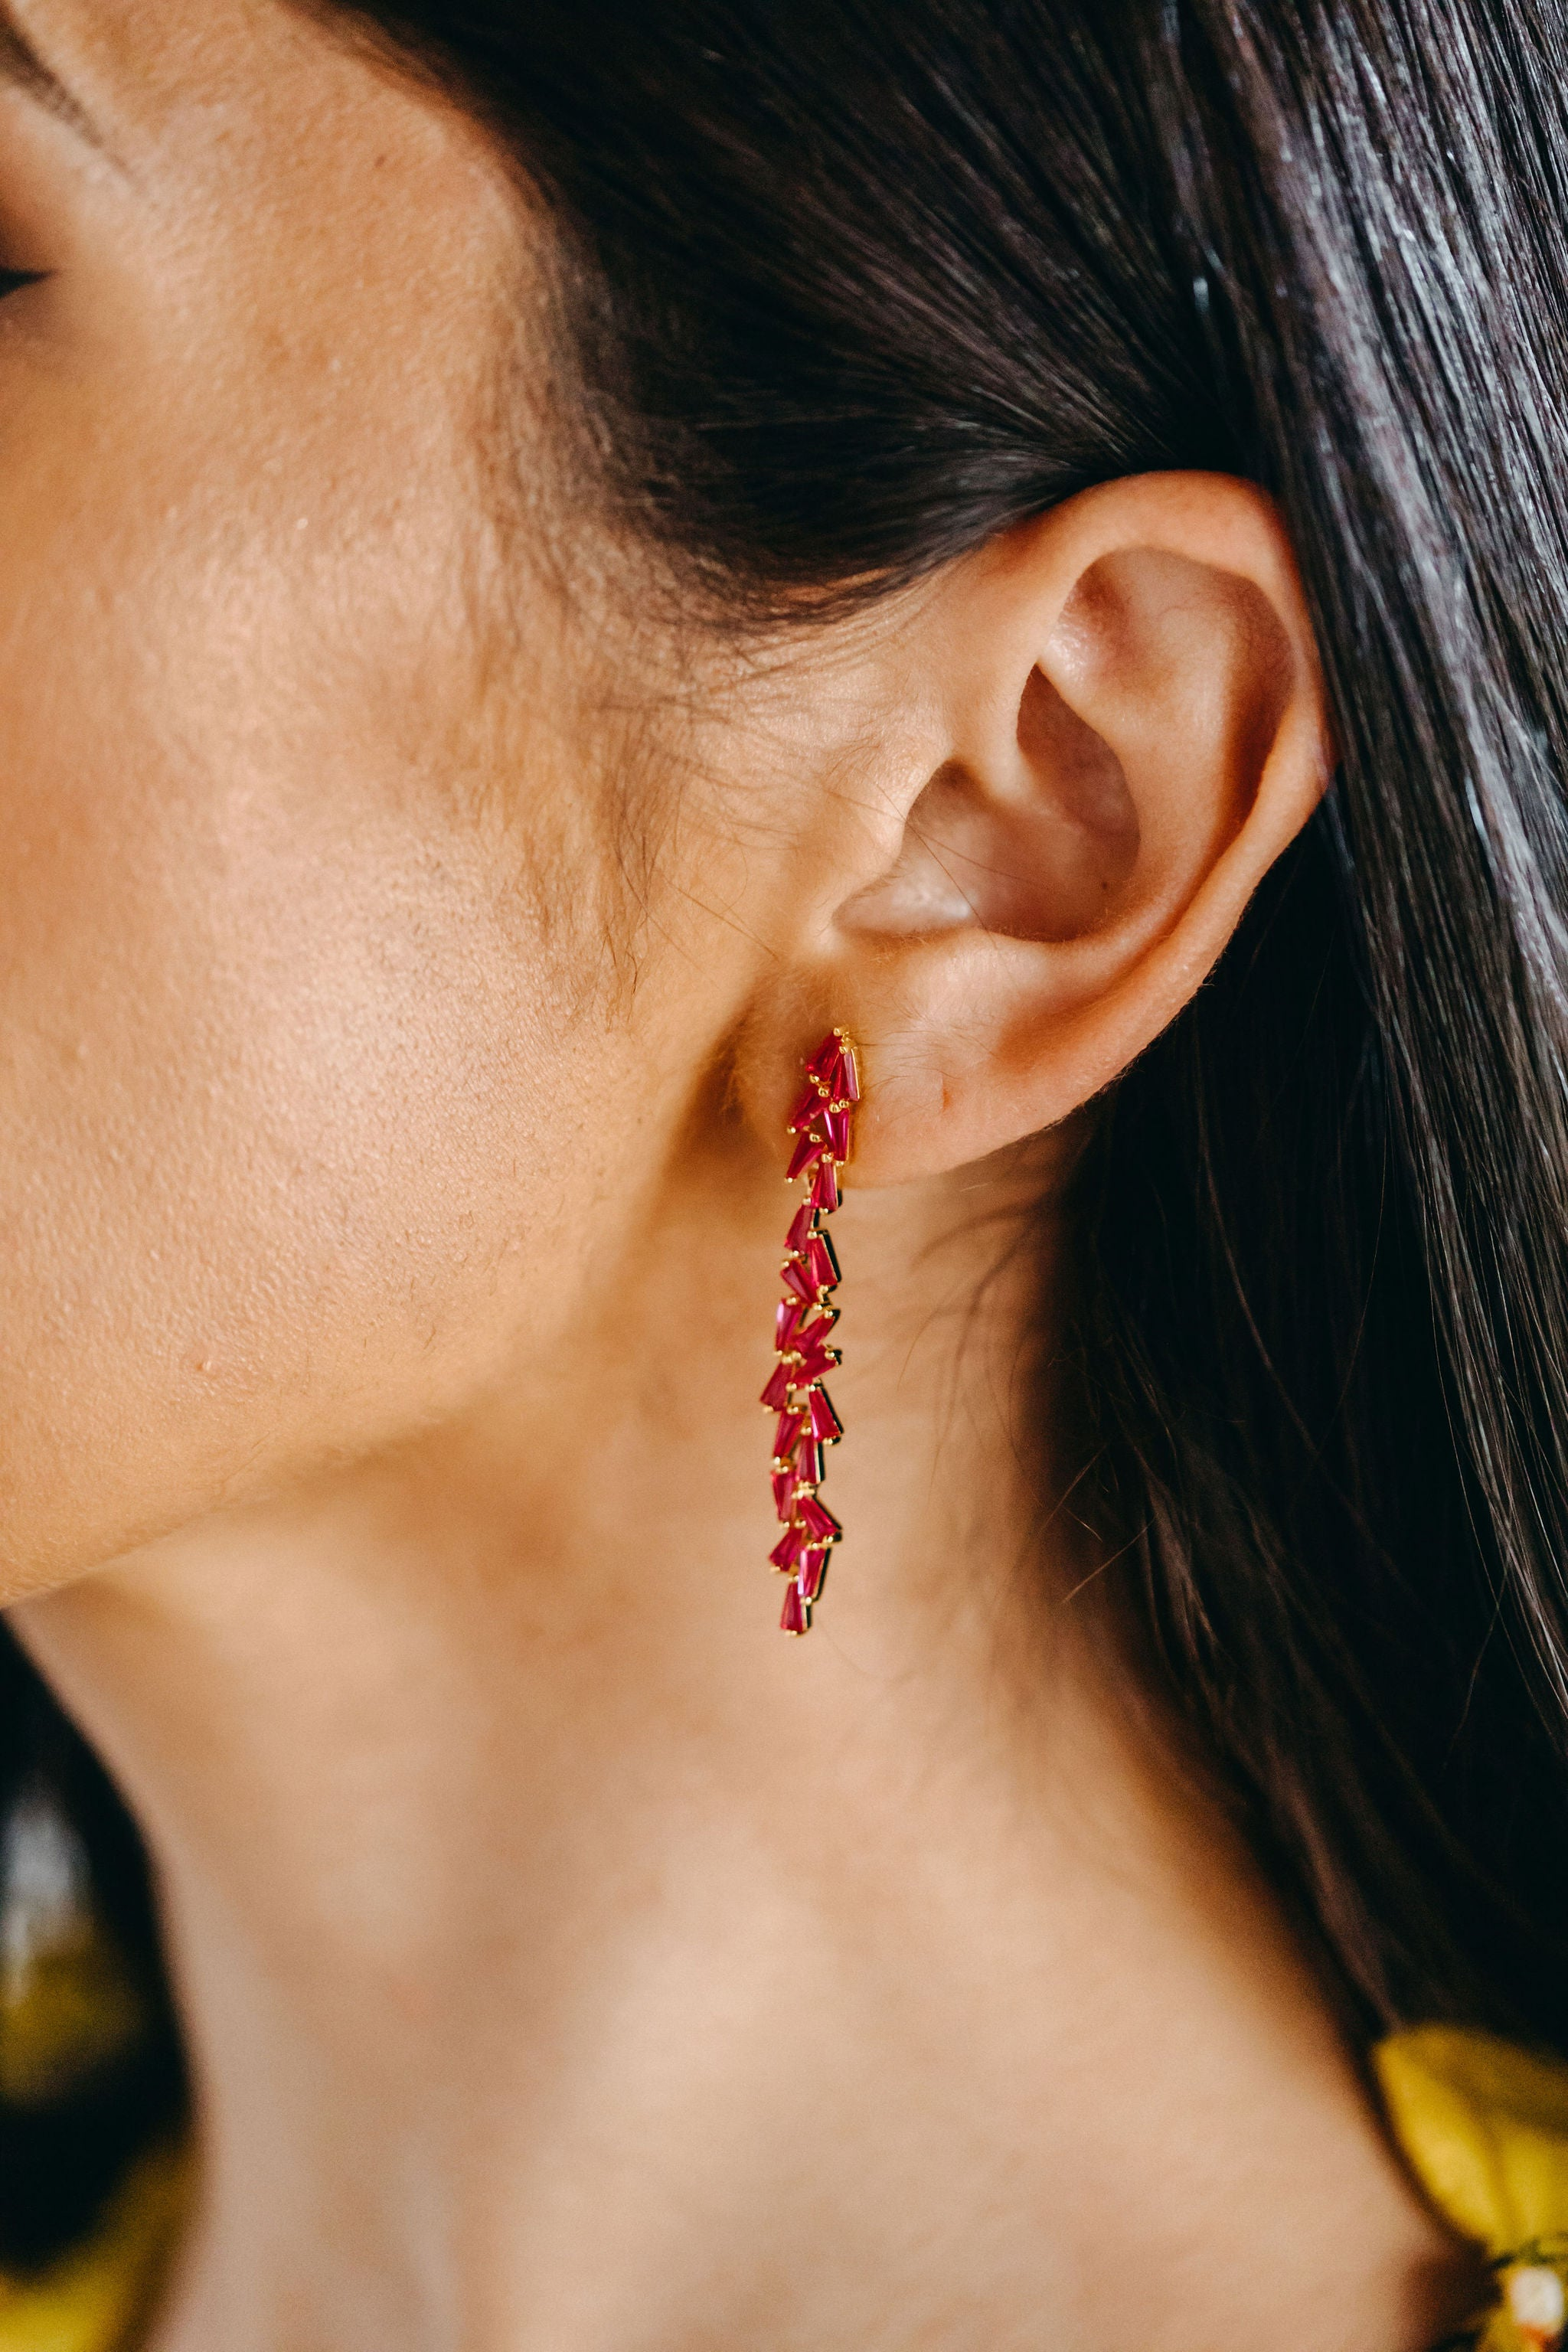 Styled image of our Aurora earrings being worn on the ear of a brunette woman.